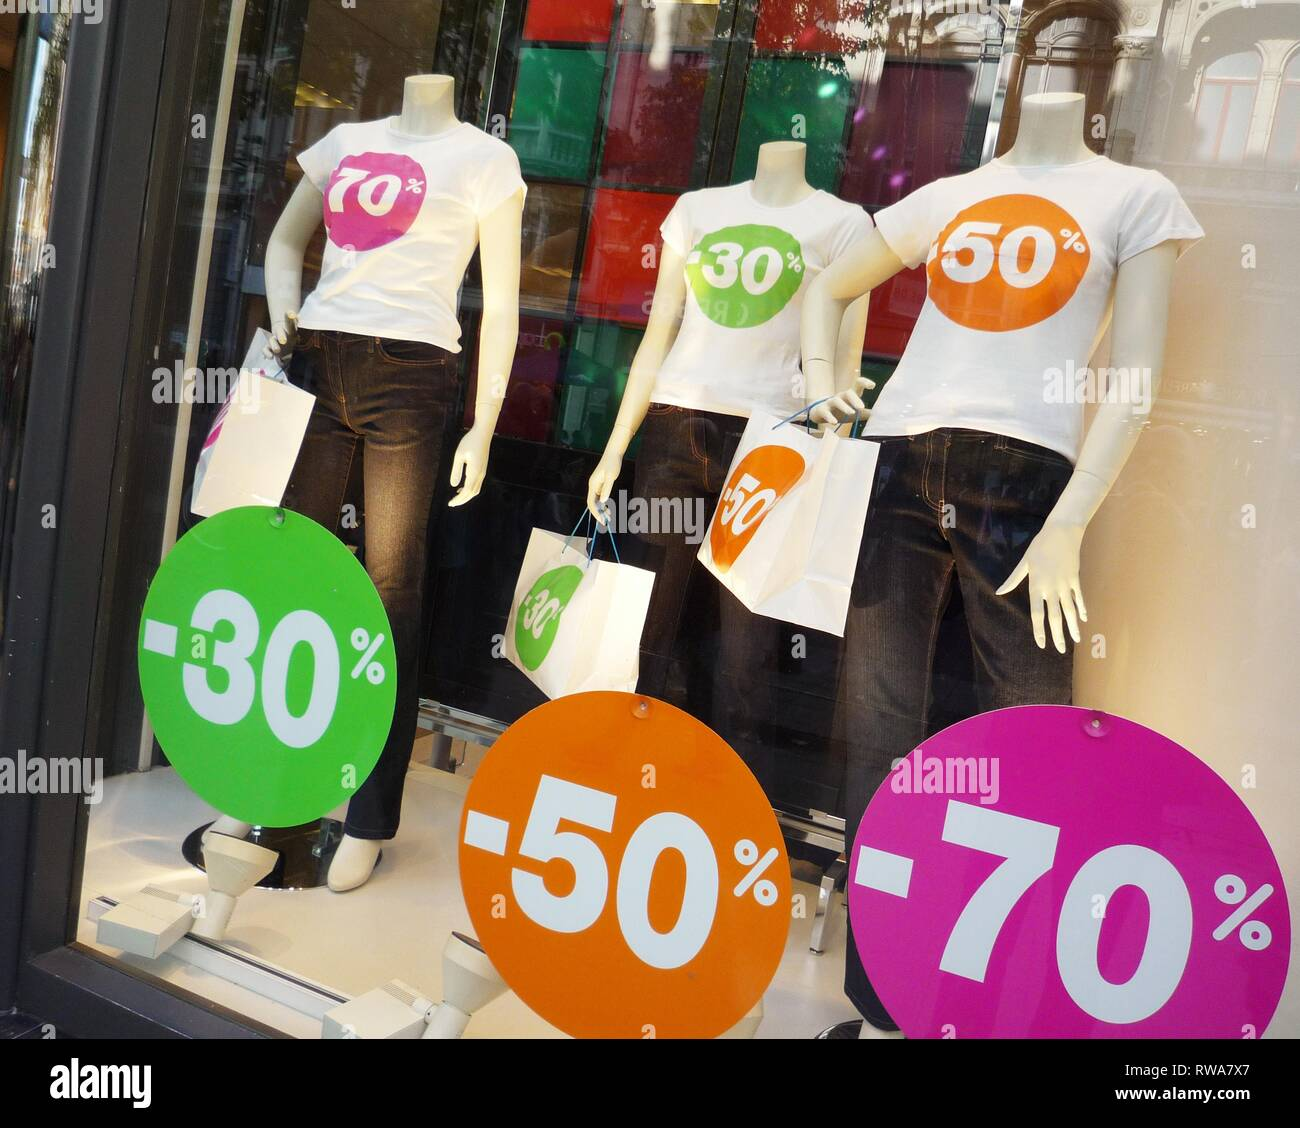 Discount, discount 50 percent, special sale, sales, shop window with mannequins from a textile shop, Belgium - Stock Image